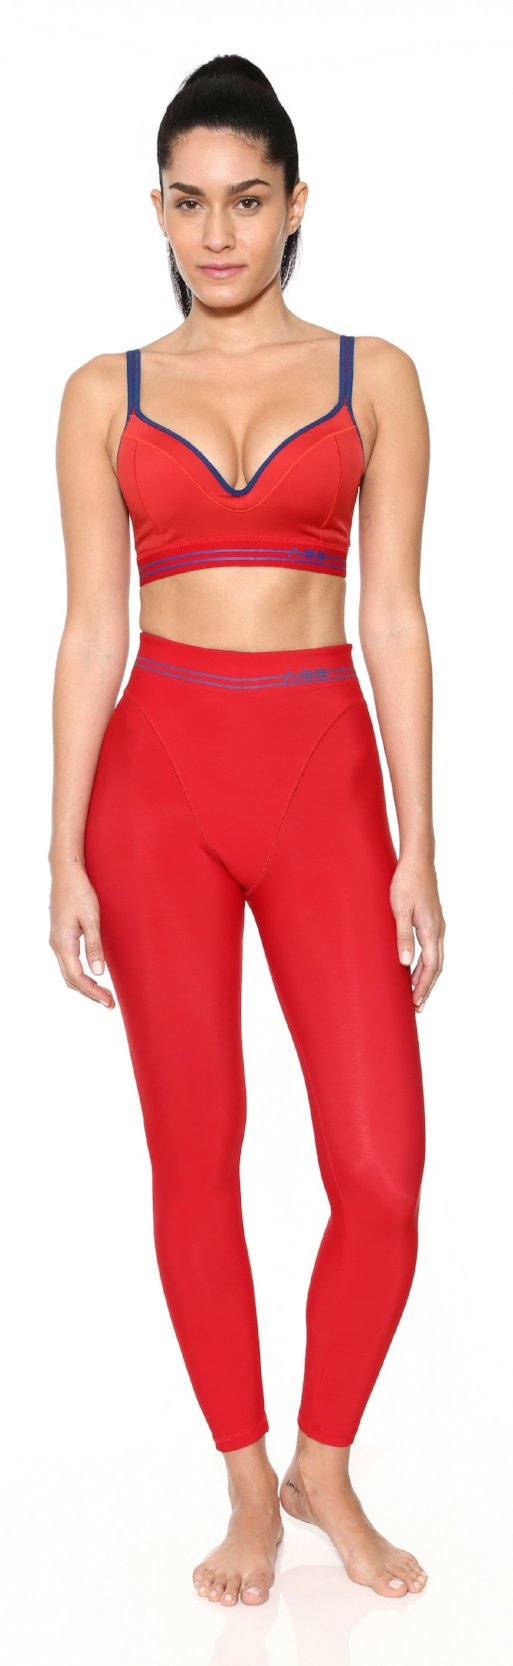 French Cut Legging - Lipstick